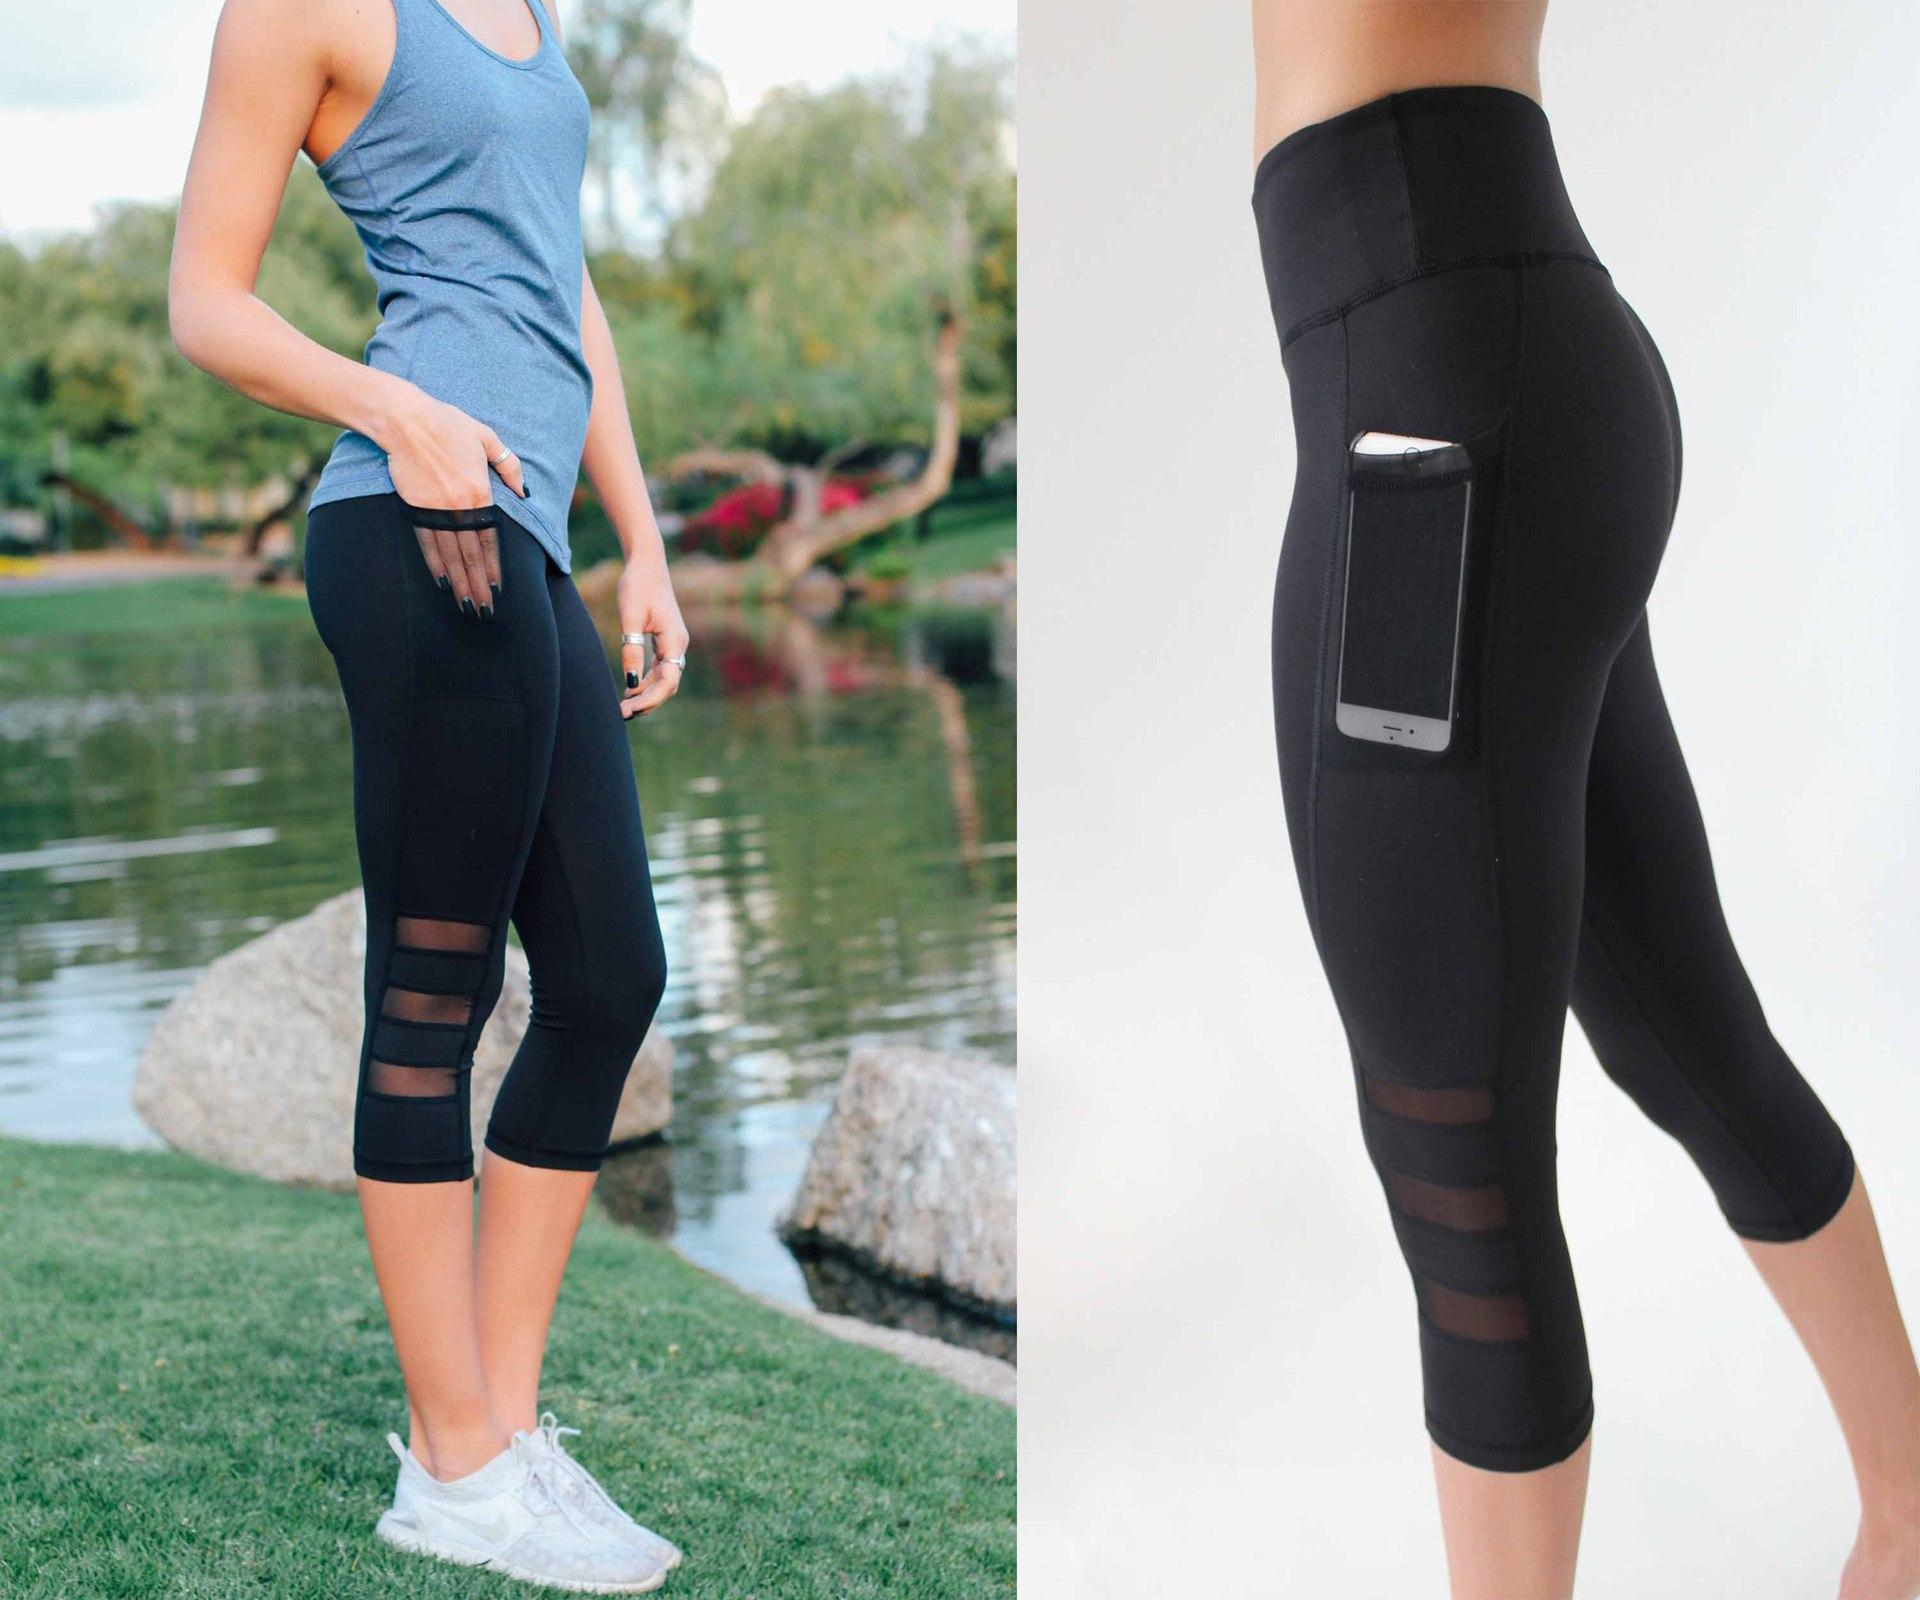 ad626cf3b4560 2019 Women Sport Leggings Yoga Pants Calf Length Pants Capri Pant Fitness  Yoga Gym High Waist Legging Girl Black Mesh 3/4 Yoga Pants Women From ...